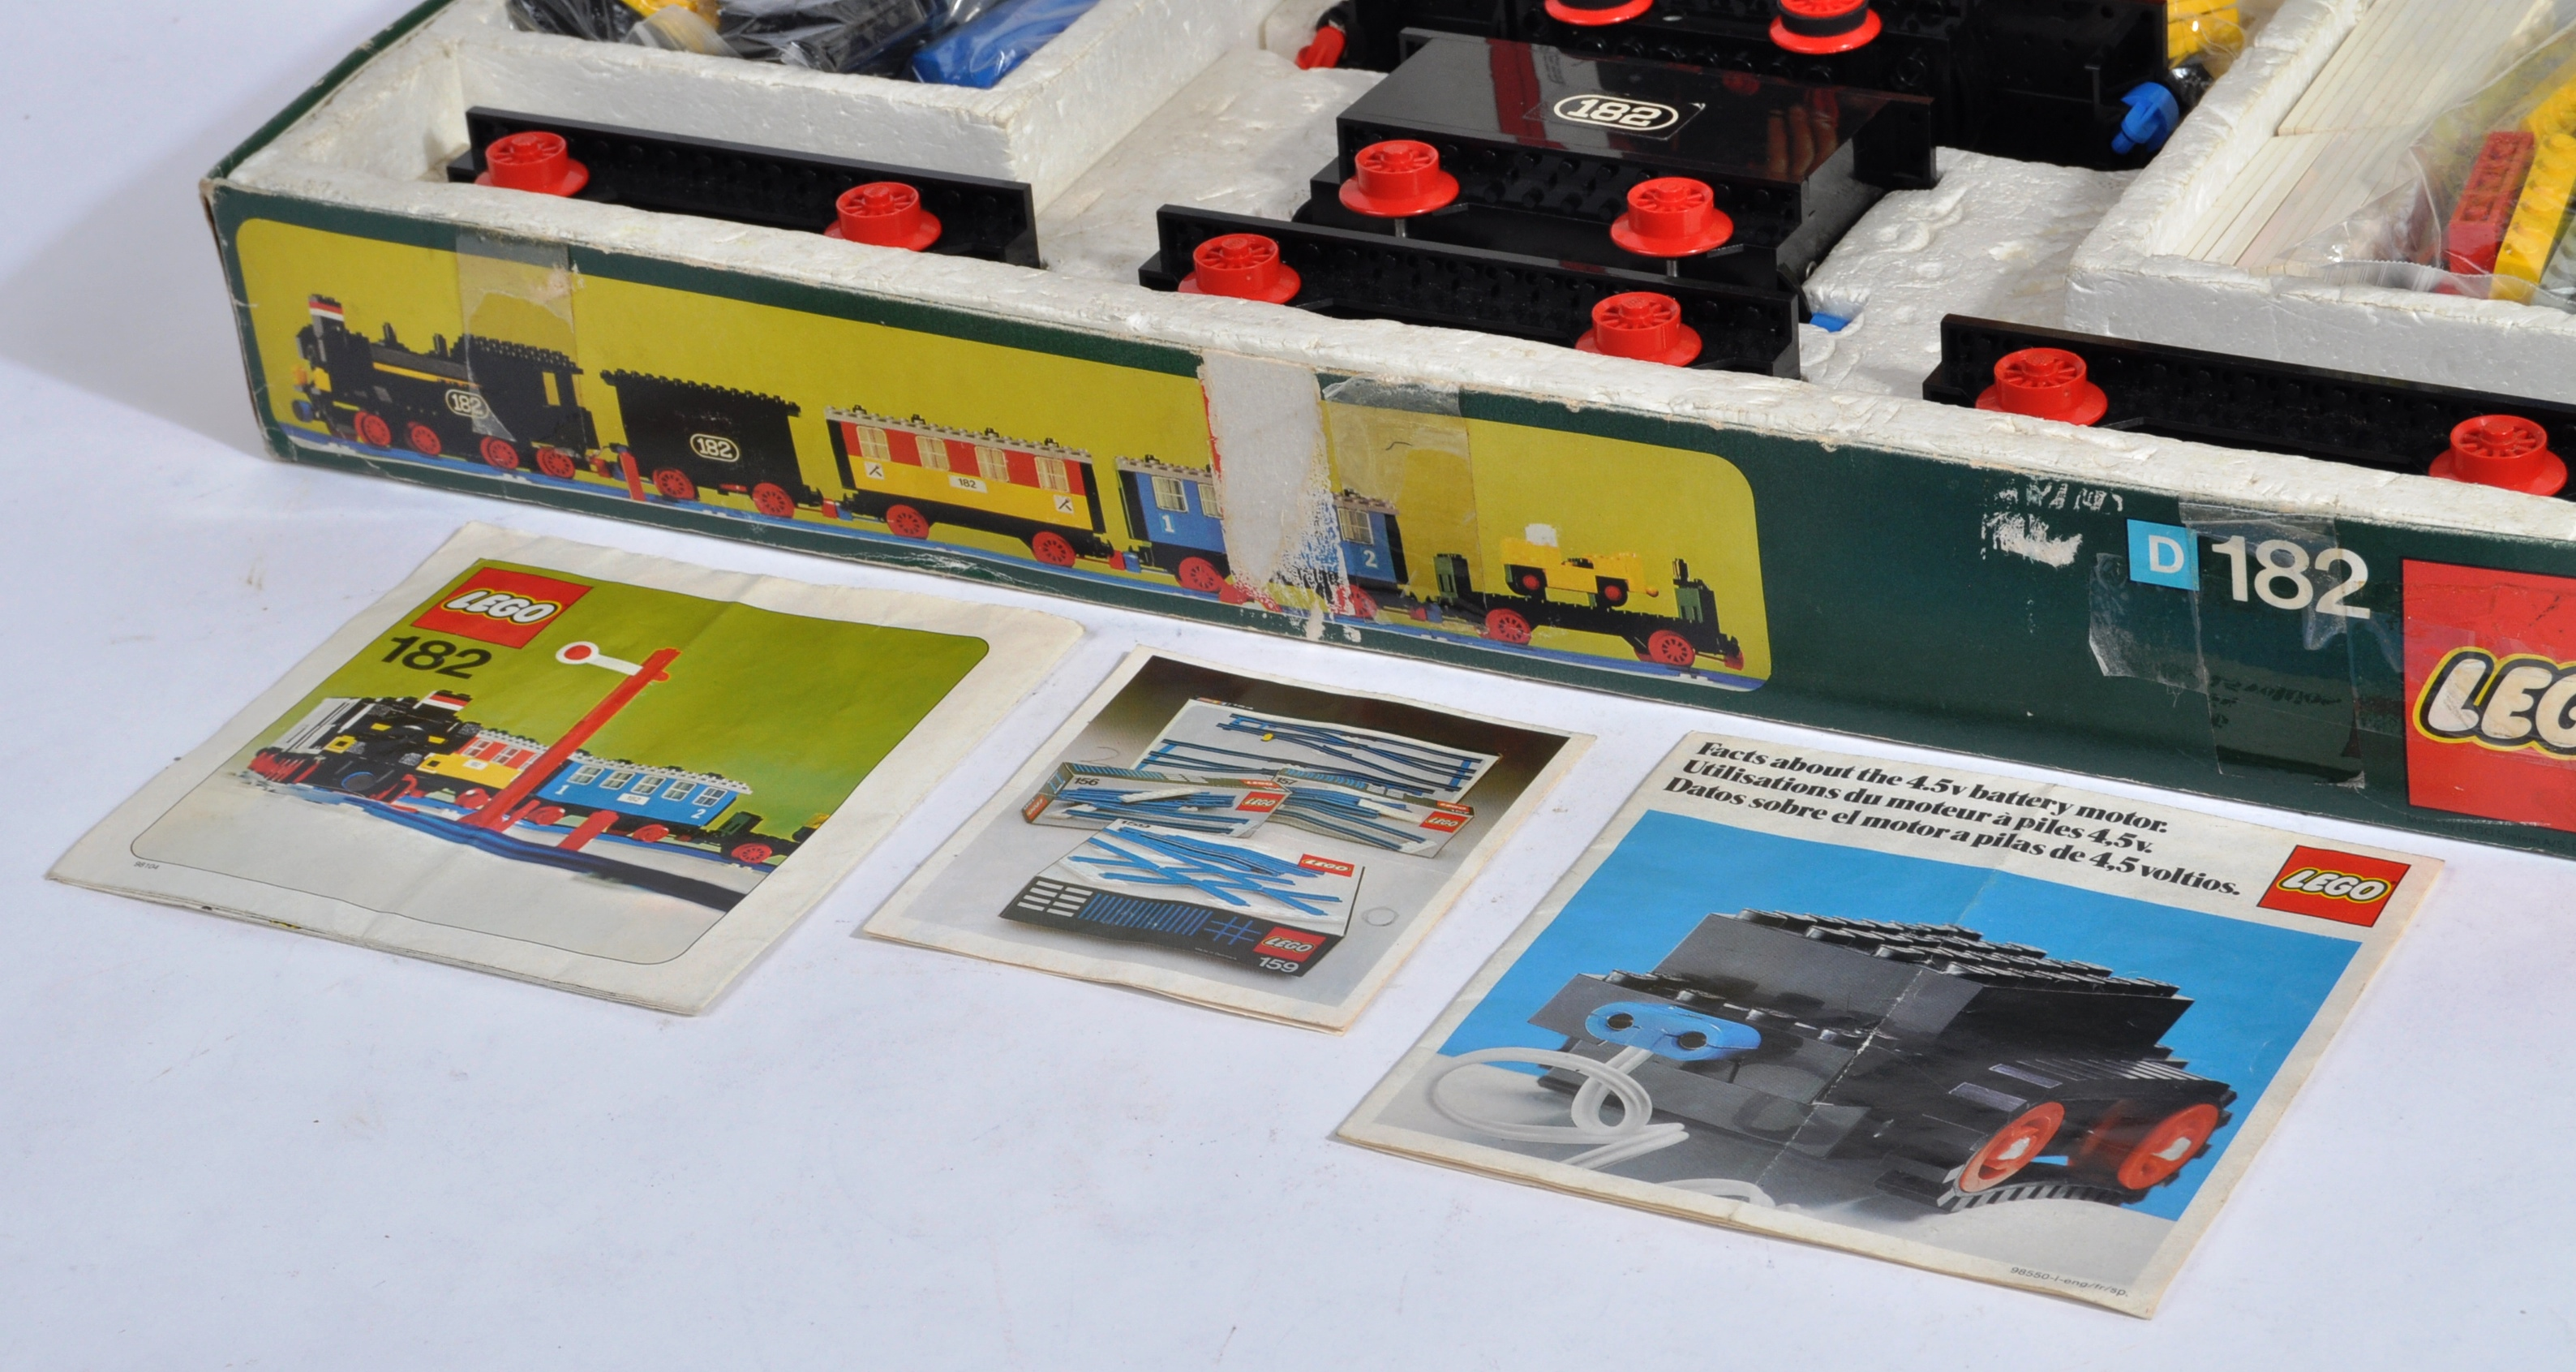 LEGO SET - 182 - TRAIN SET WITH MOTOR AND TRACK - Image 4 of 14